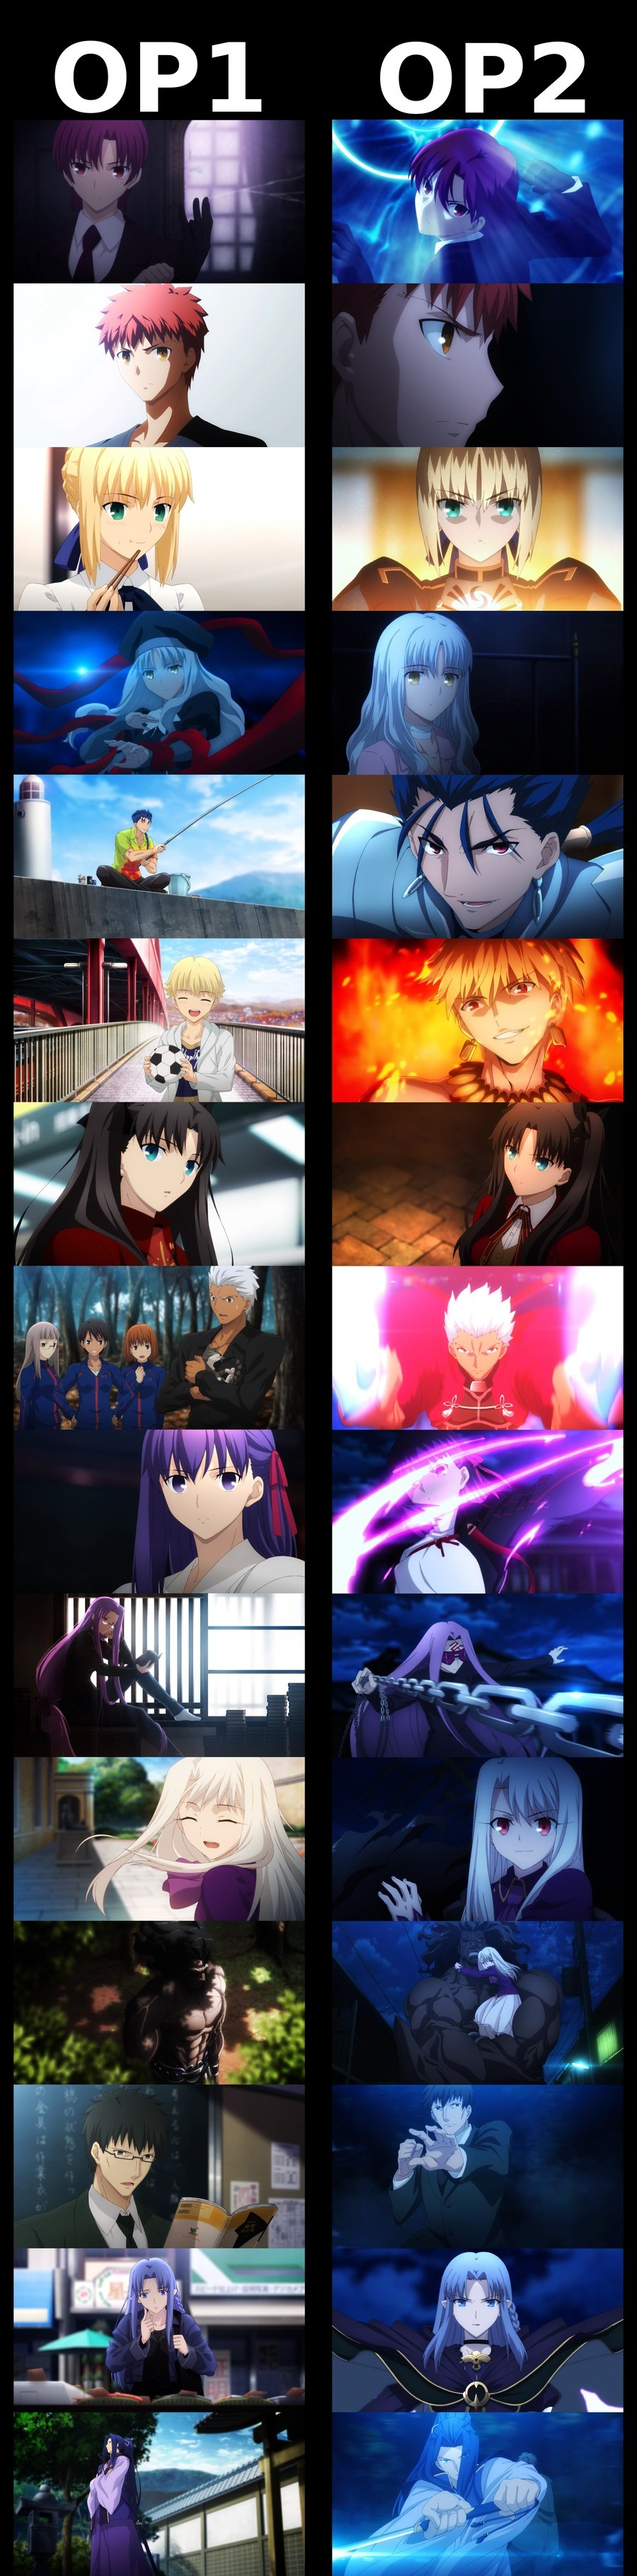 Fate/Hollow Ataraxia Character-focused shots between the two OP. .. I personally refuse to watch this till all the movies are out. I hate waiting a full year not knowing what's gonna happen next